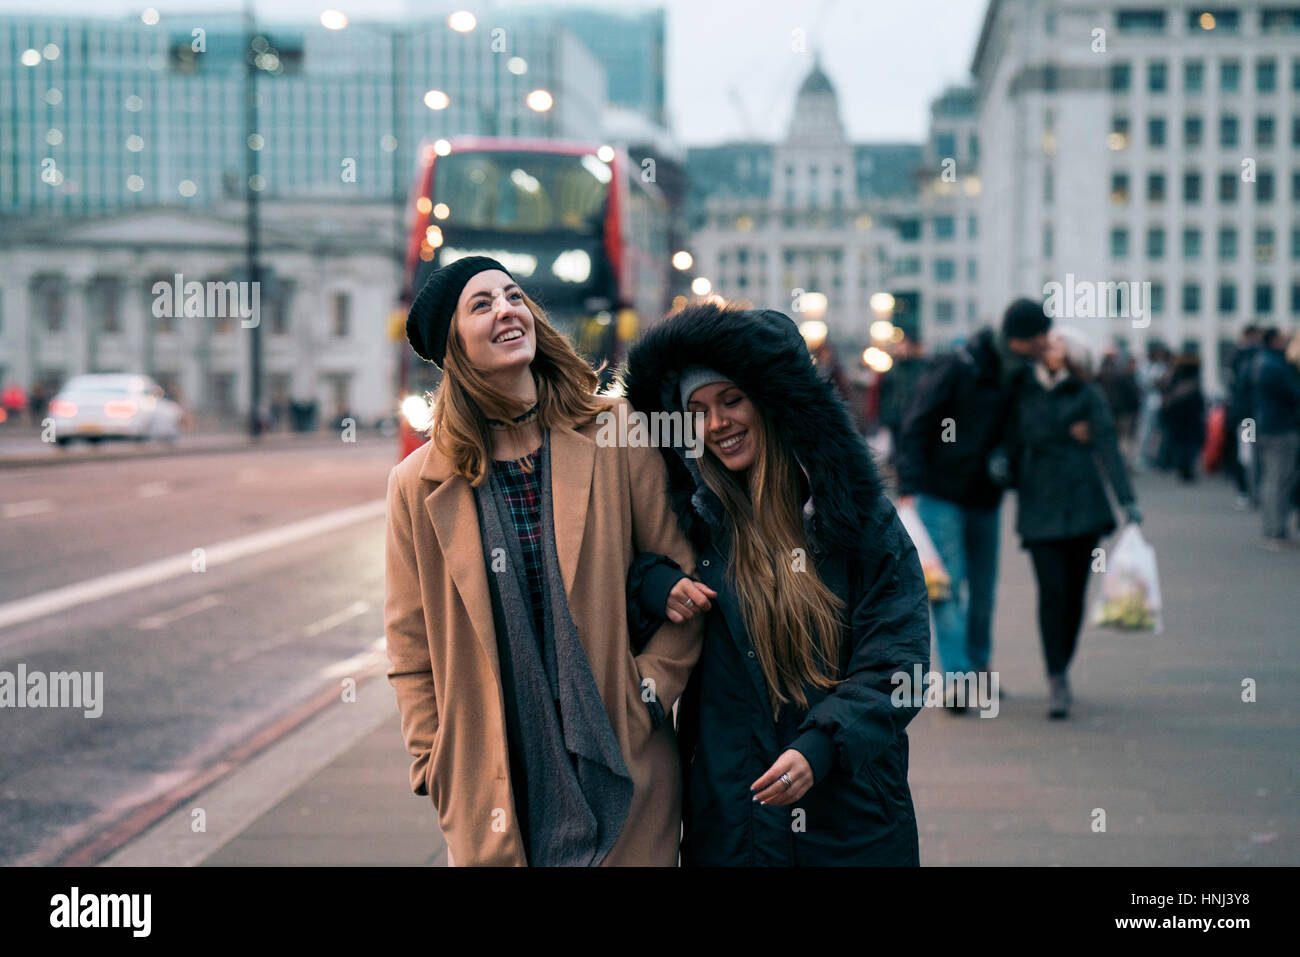 Smiling friends walking on road in city Photo Stock